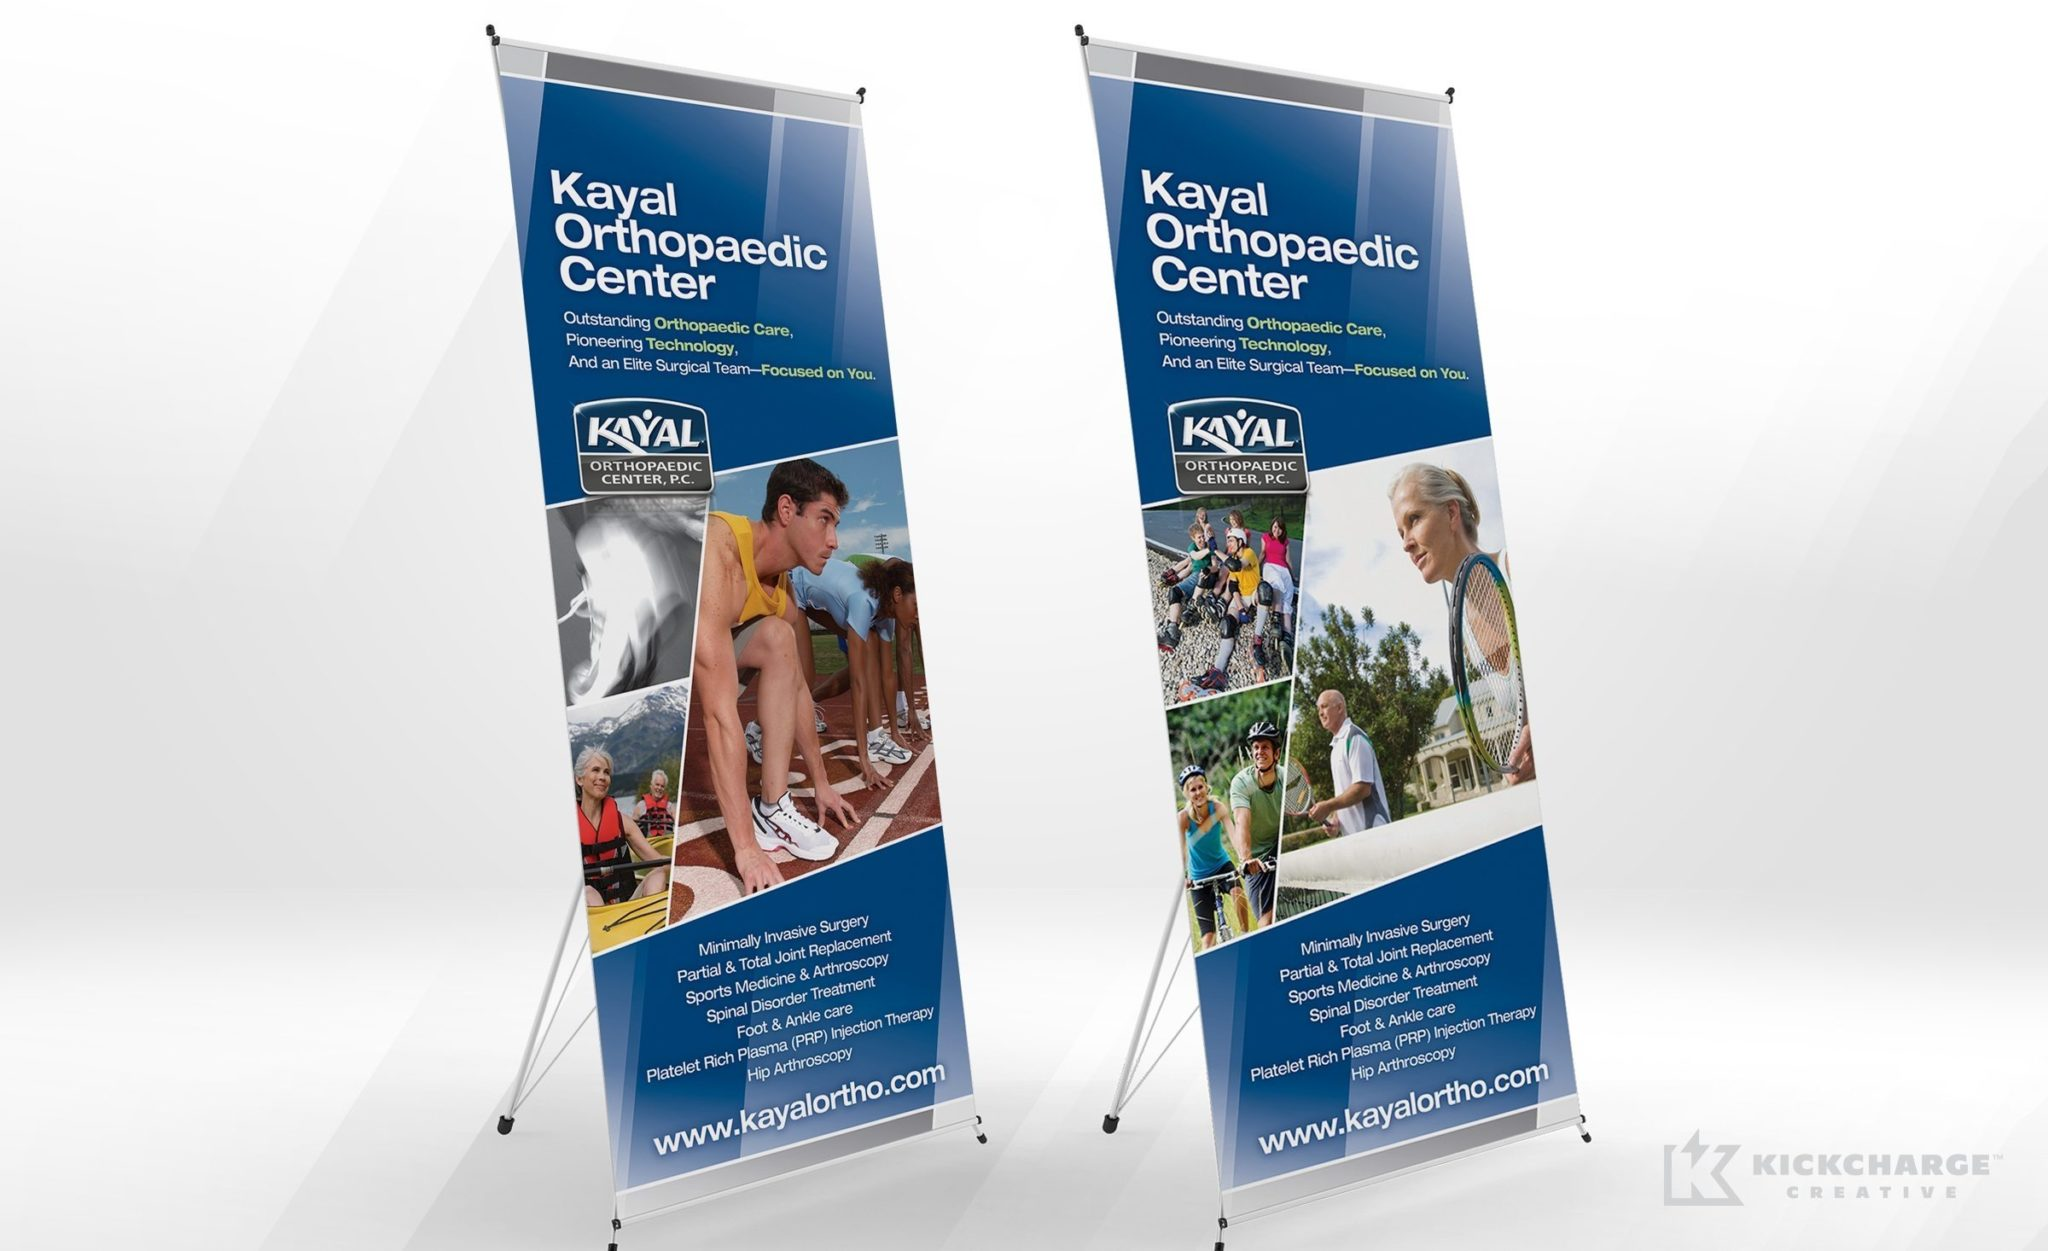 Trade show banner design for Kayal Orthopaedic Center.